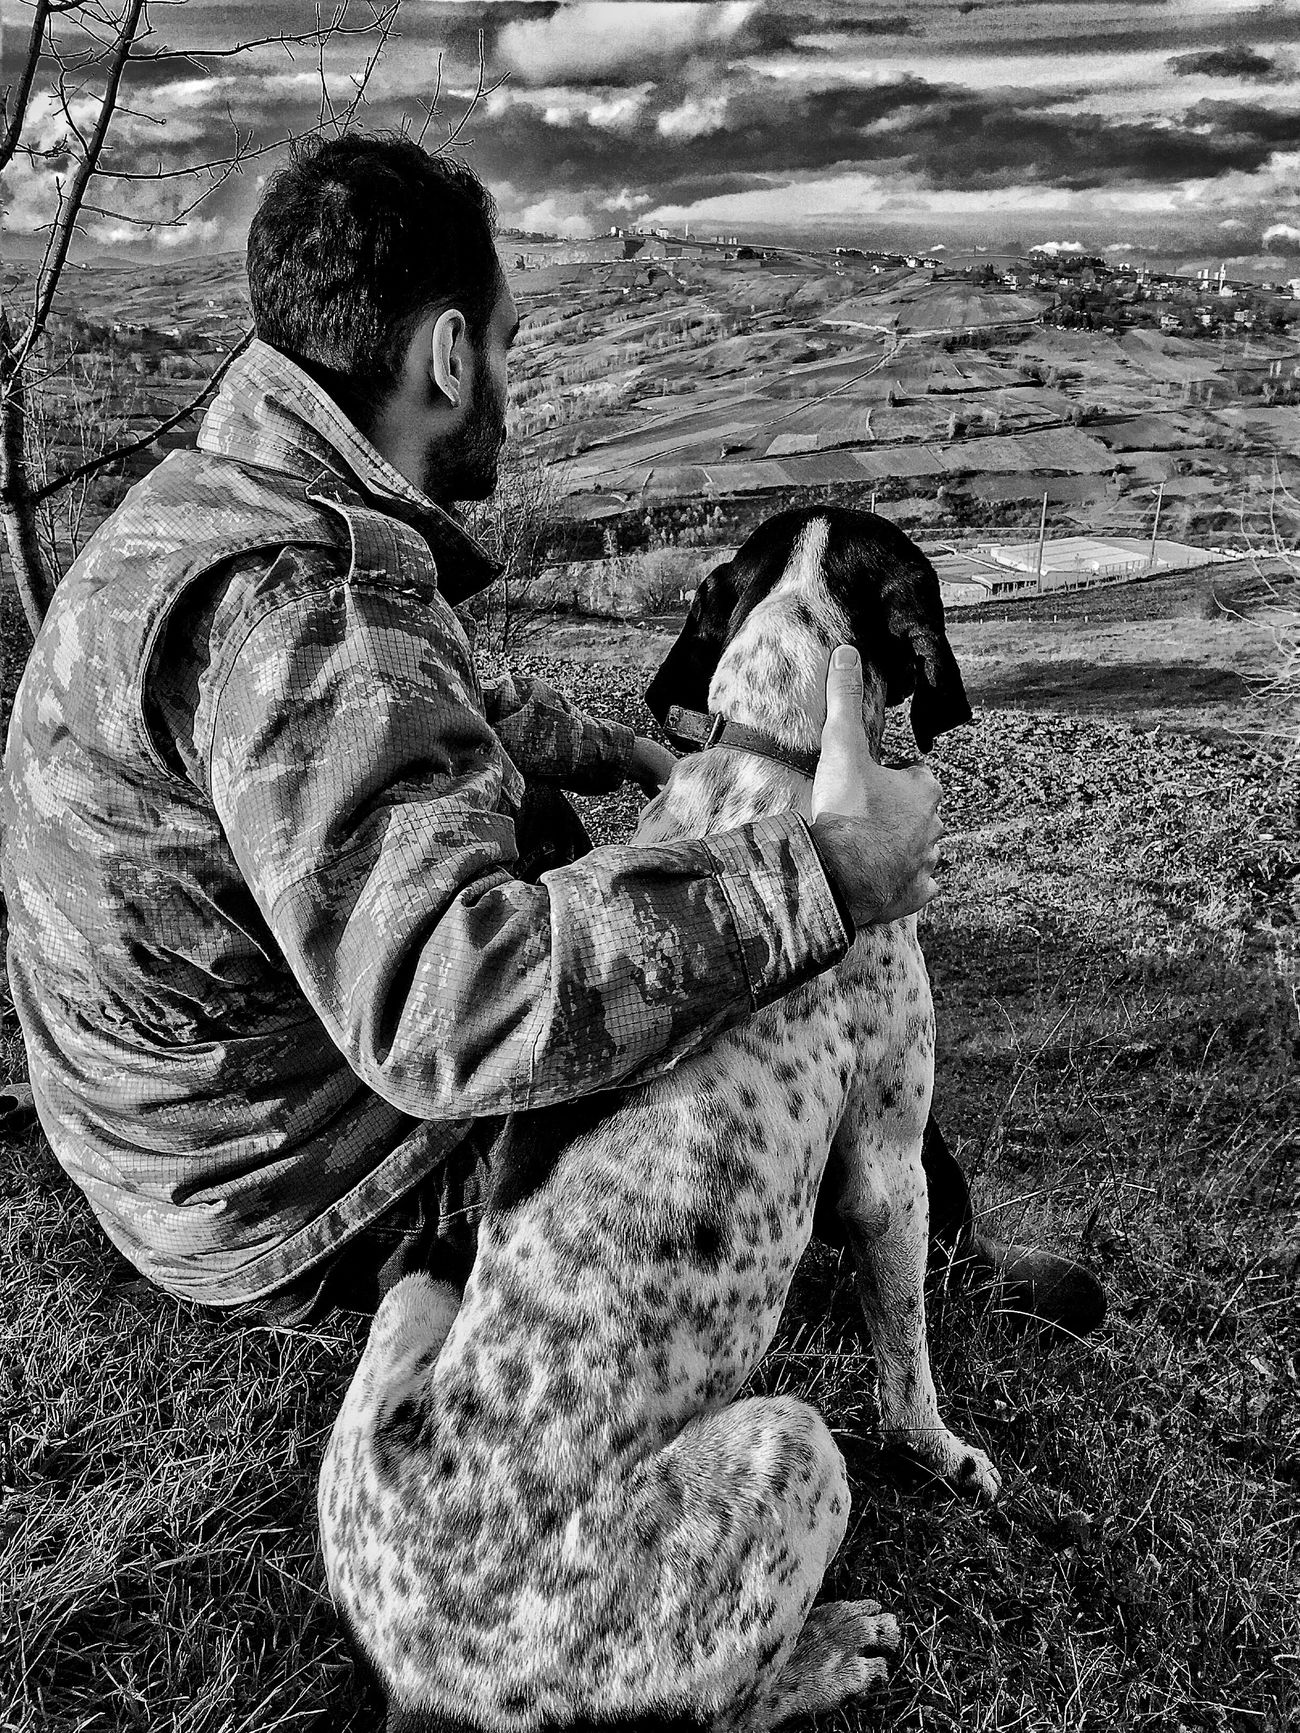 Real People Pets Lifestyles One Person Dog Animal Themes Bestfriend Dogfriends Alone Alone Time Blackandwhite Black And White Black & White Bestdogever